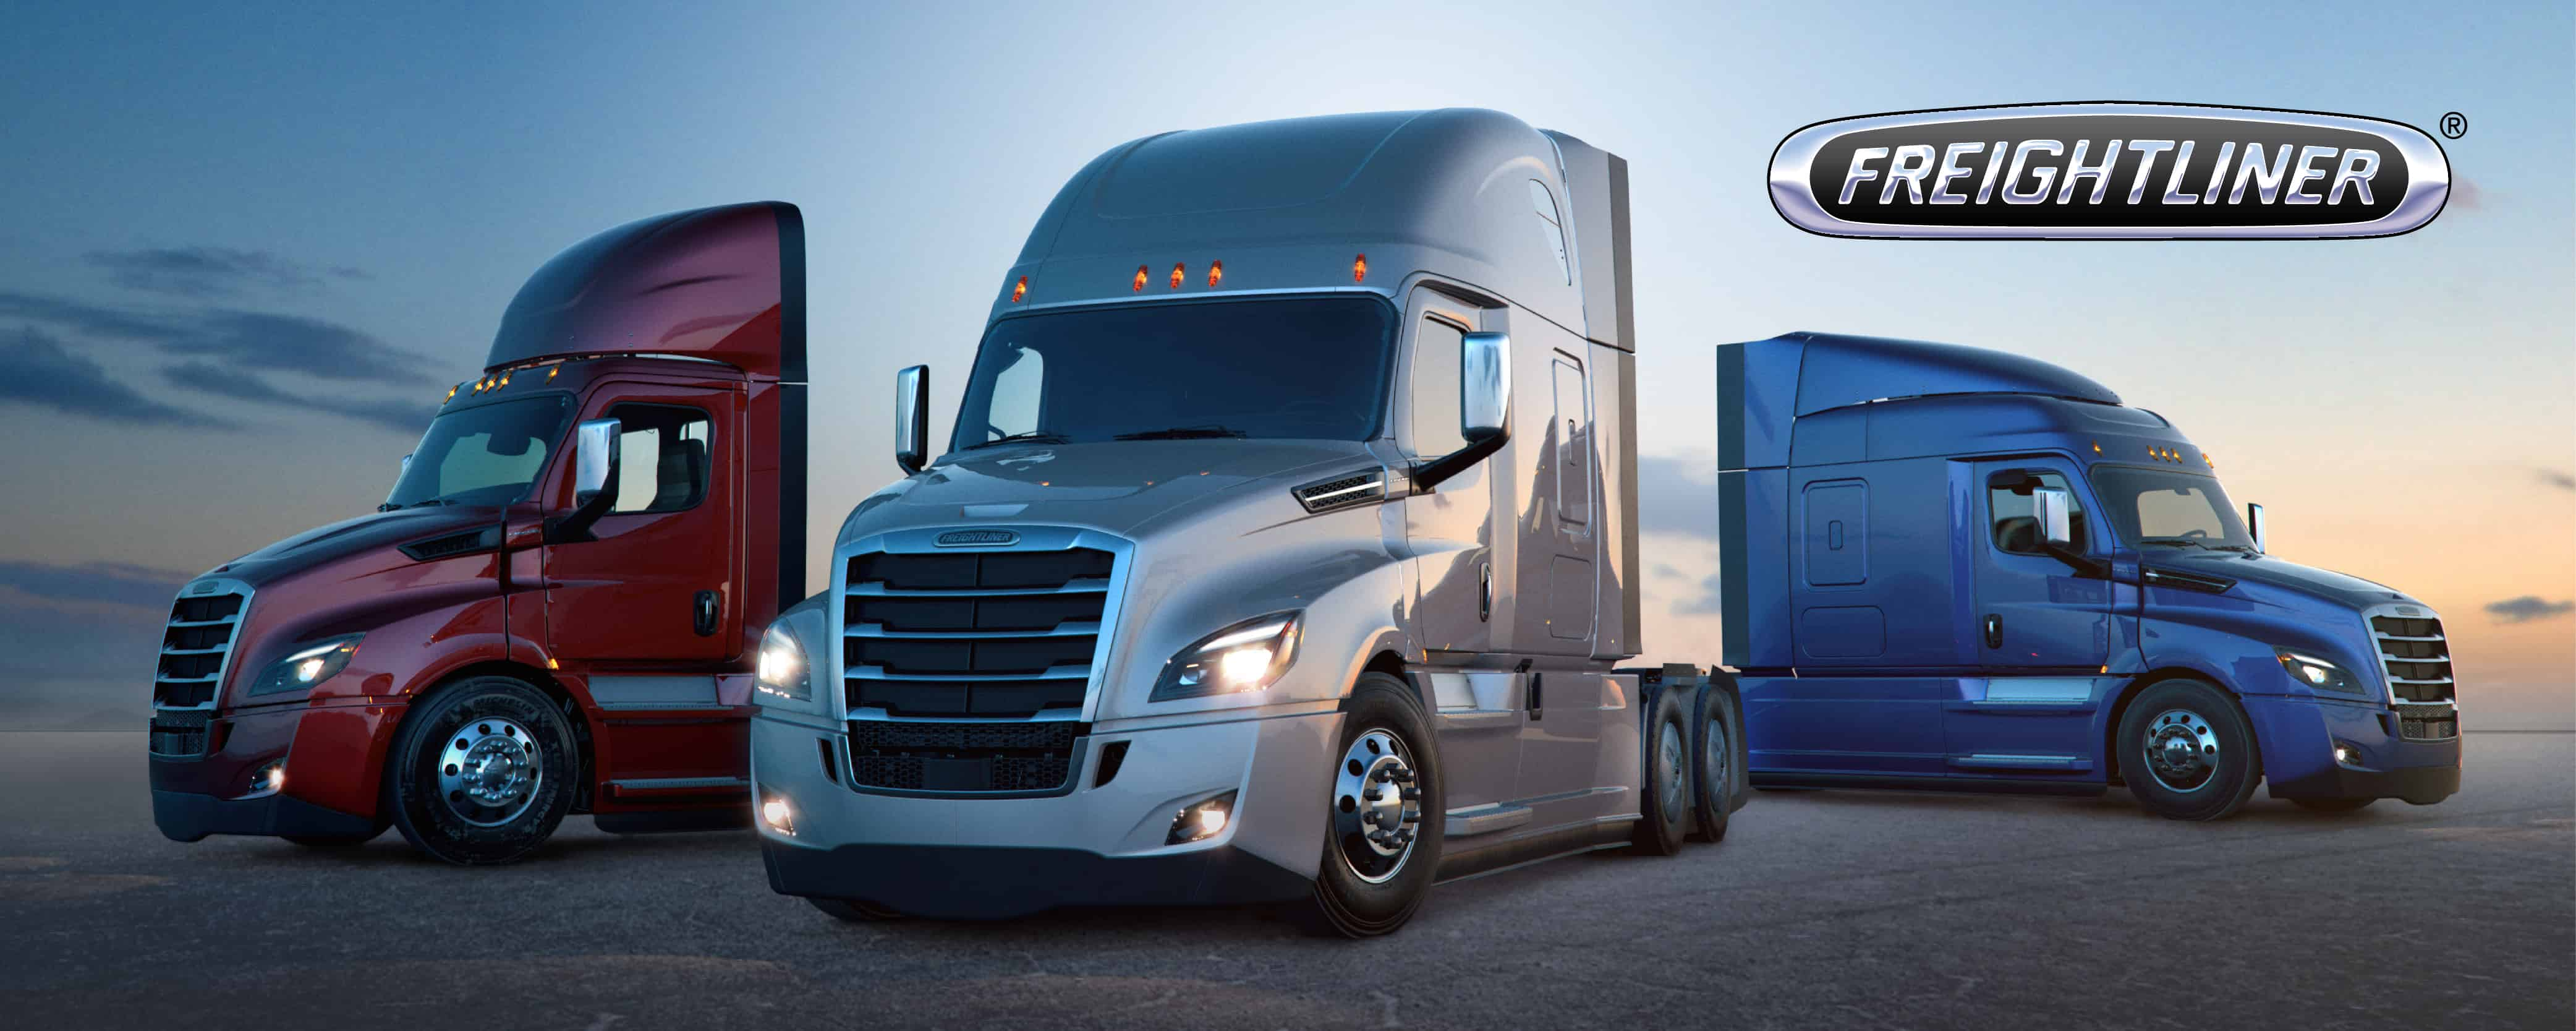 new freightliner cascadia freightliner trucks freightliners for sale trucks for sale tracey road equipment truck dealer new york